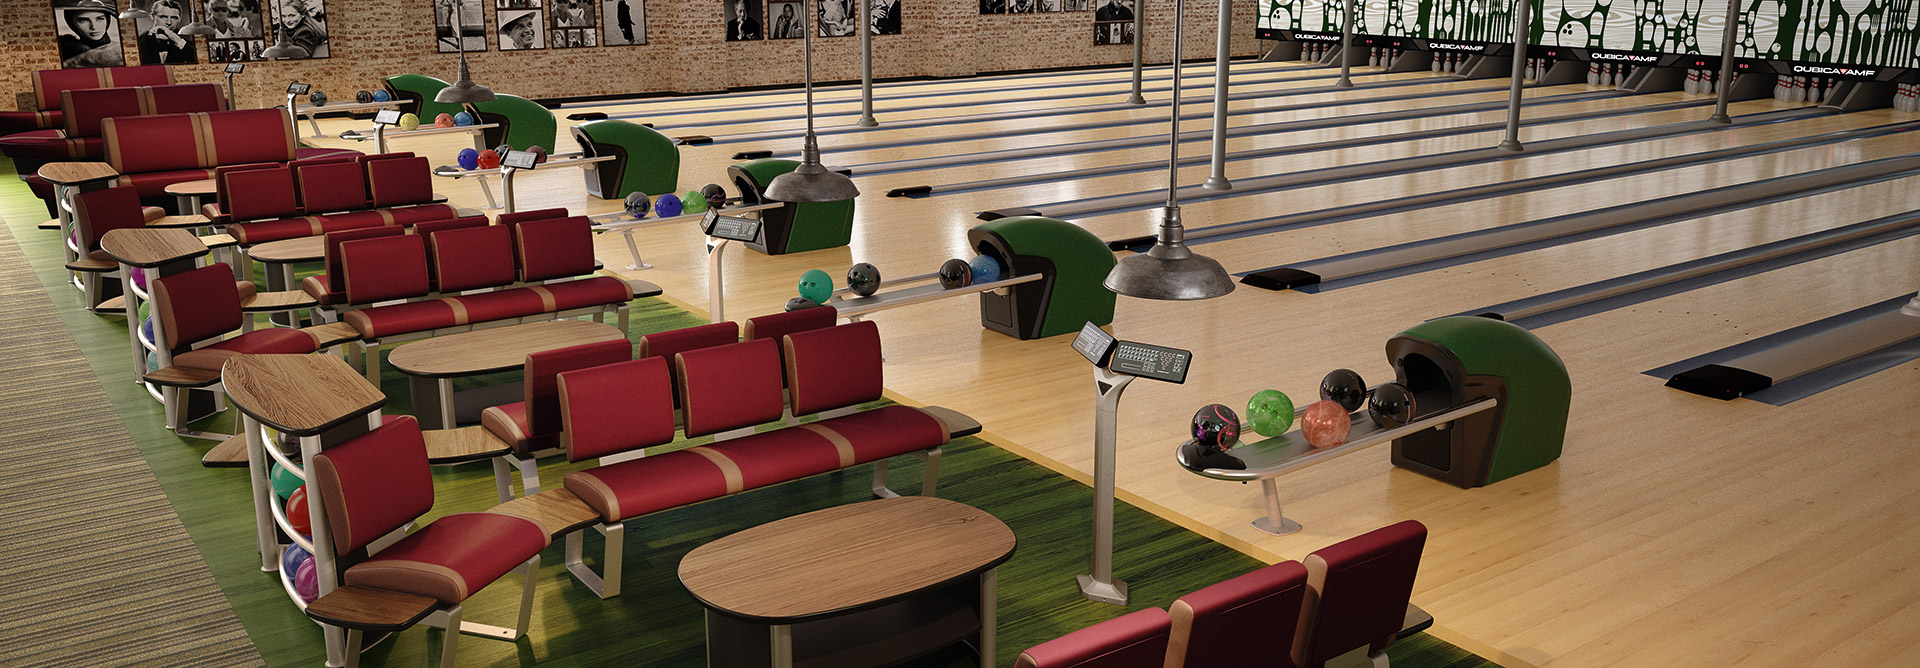 Bowling-QubicaAMF-furniture-harmony-synergy-banner.jpg